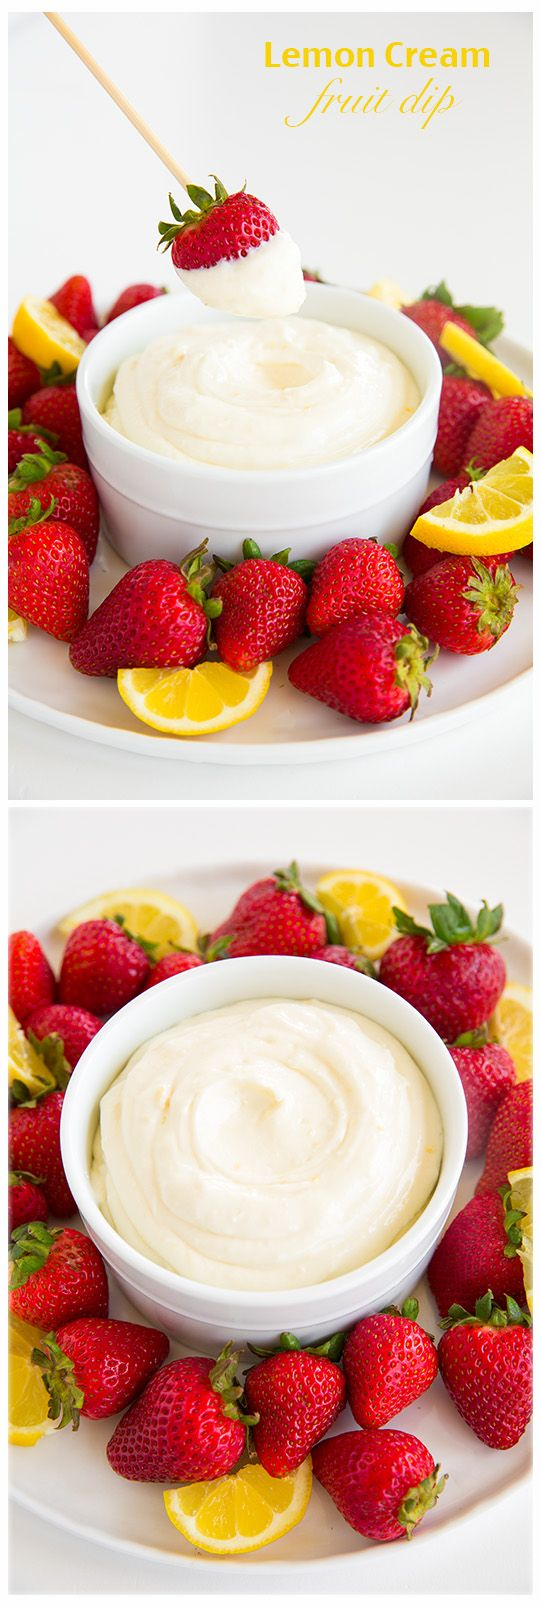 Lemon Cream Fruit Dip - only requires 4 ingredients and a few minutes to make!